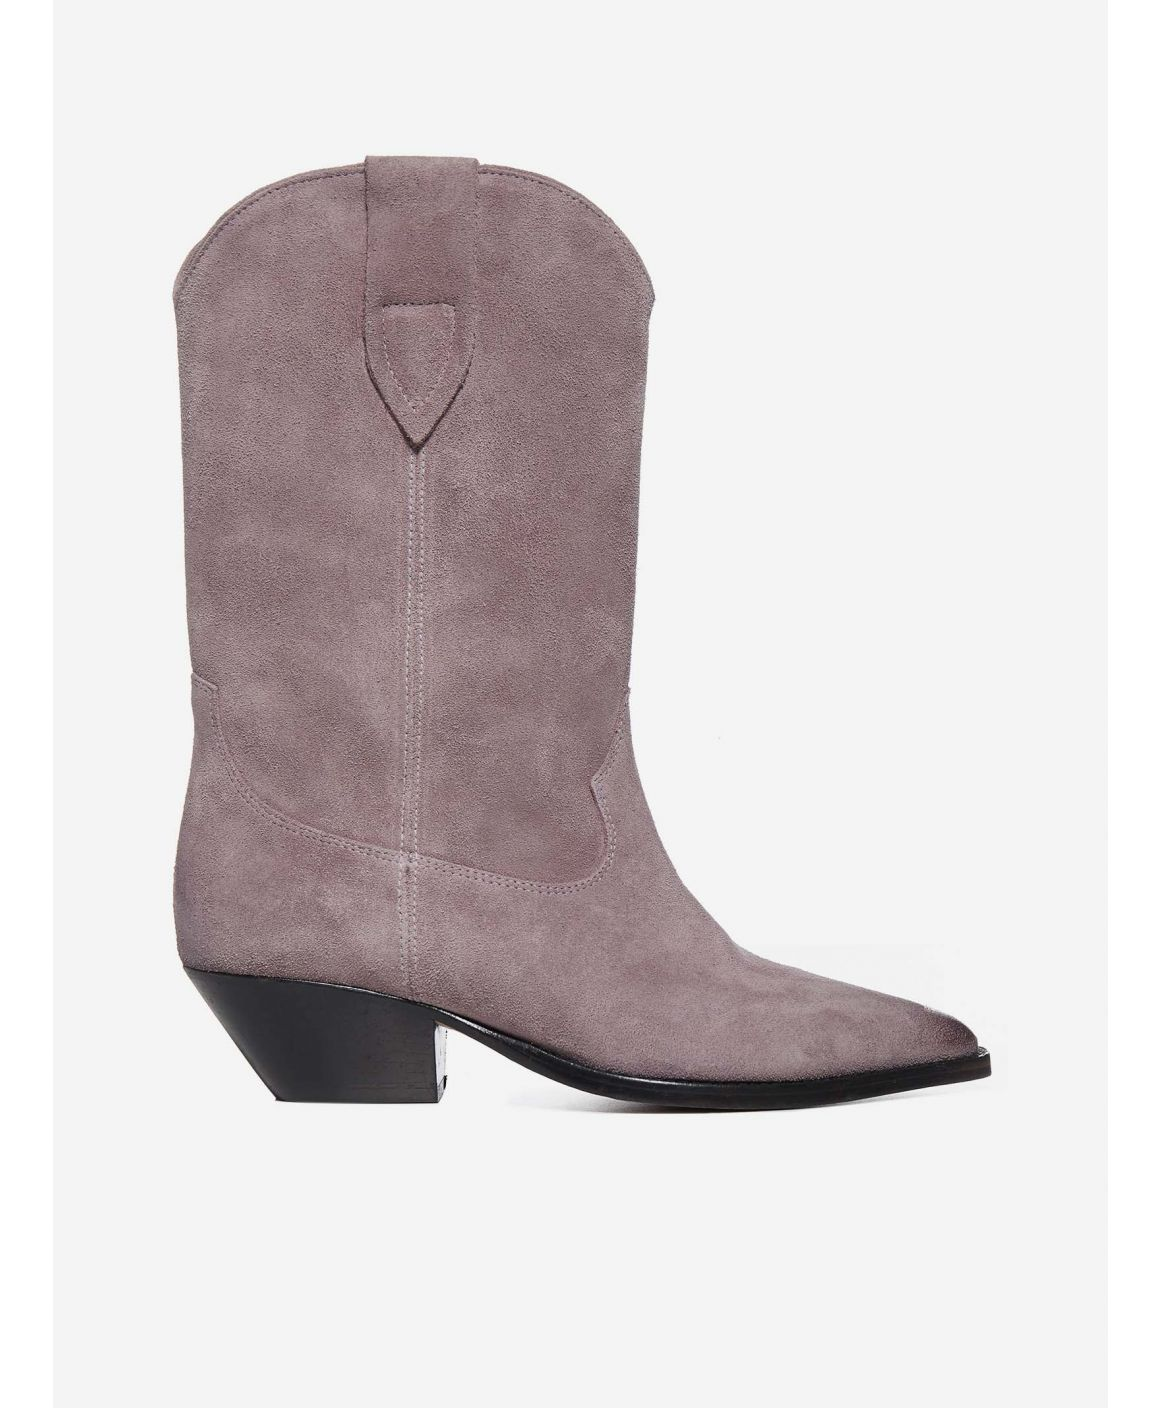 Duerto suede boots